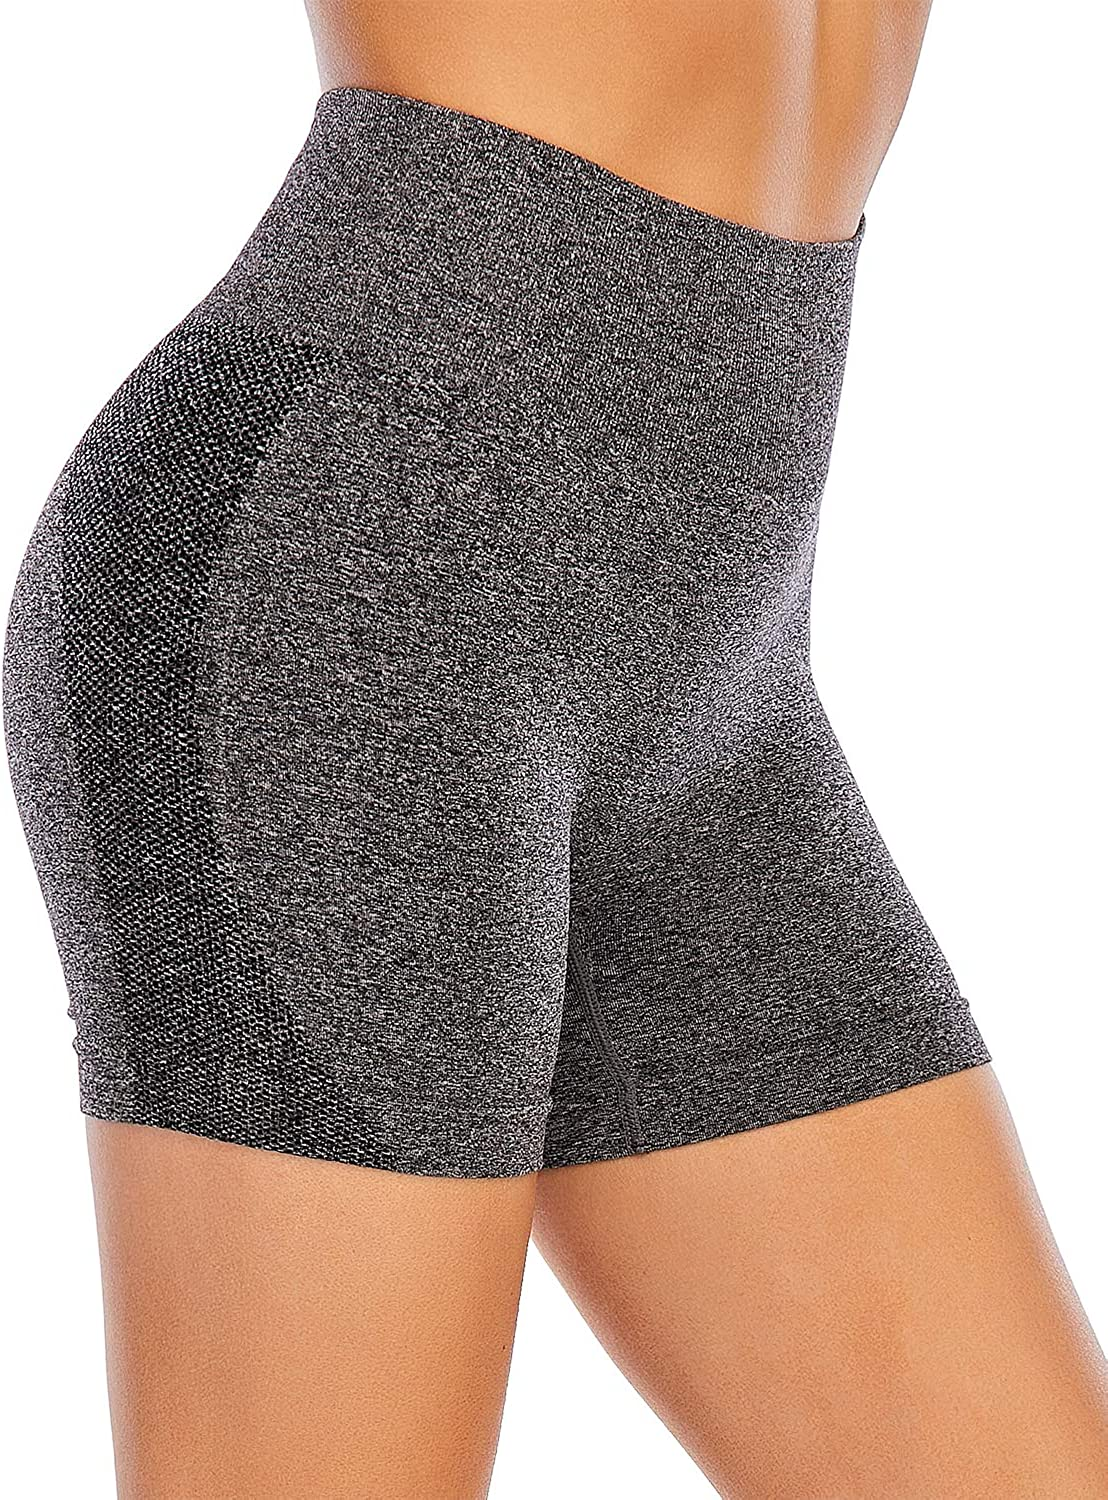 AHLW High Waist Seamless Gym Shorts for Women Mesh Breathable Compression Tummy Control Workout Athletic Exercise Shorts